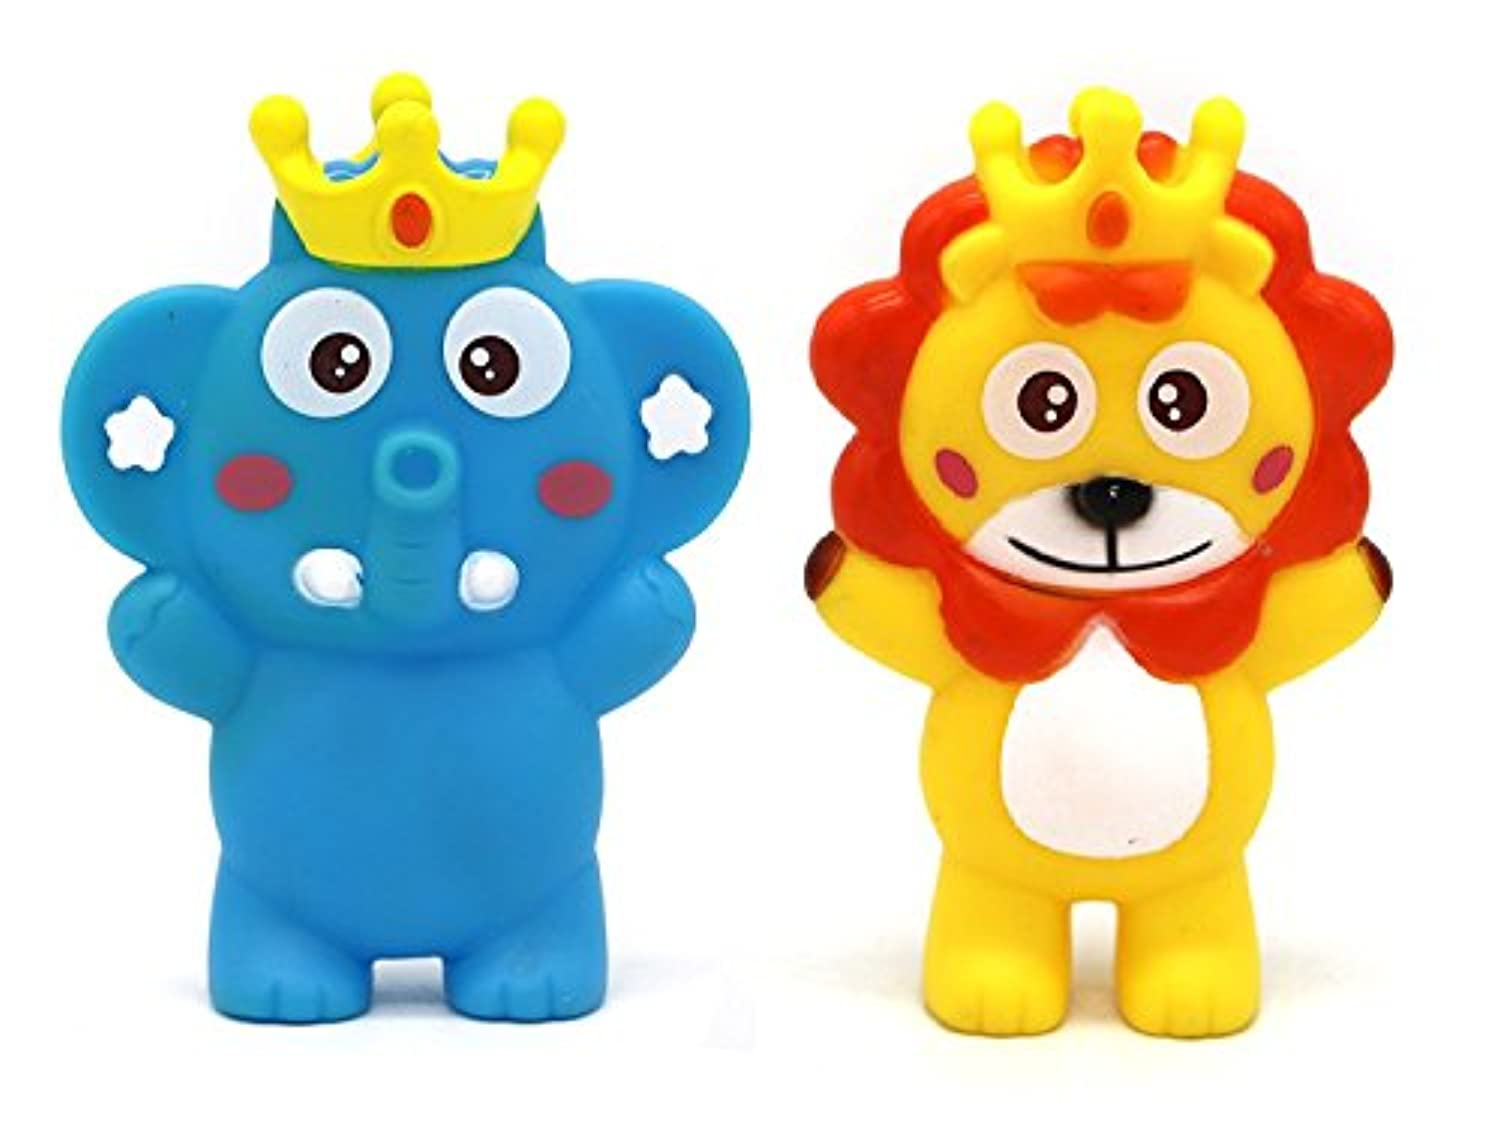 Little Treasures Teether Toy 3-in-1 Squeeze Whistle Bath Toy Includes 2 Individual Toy Characters [並行輸入品]